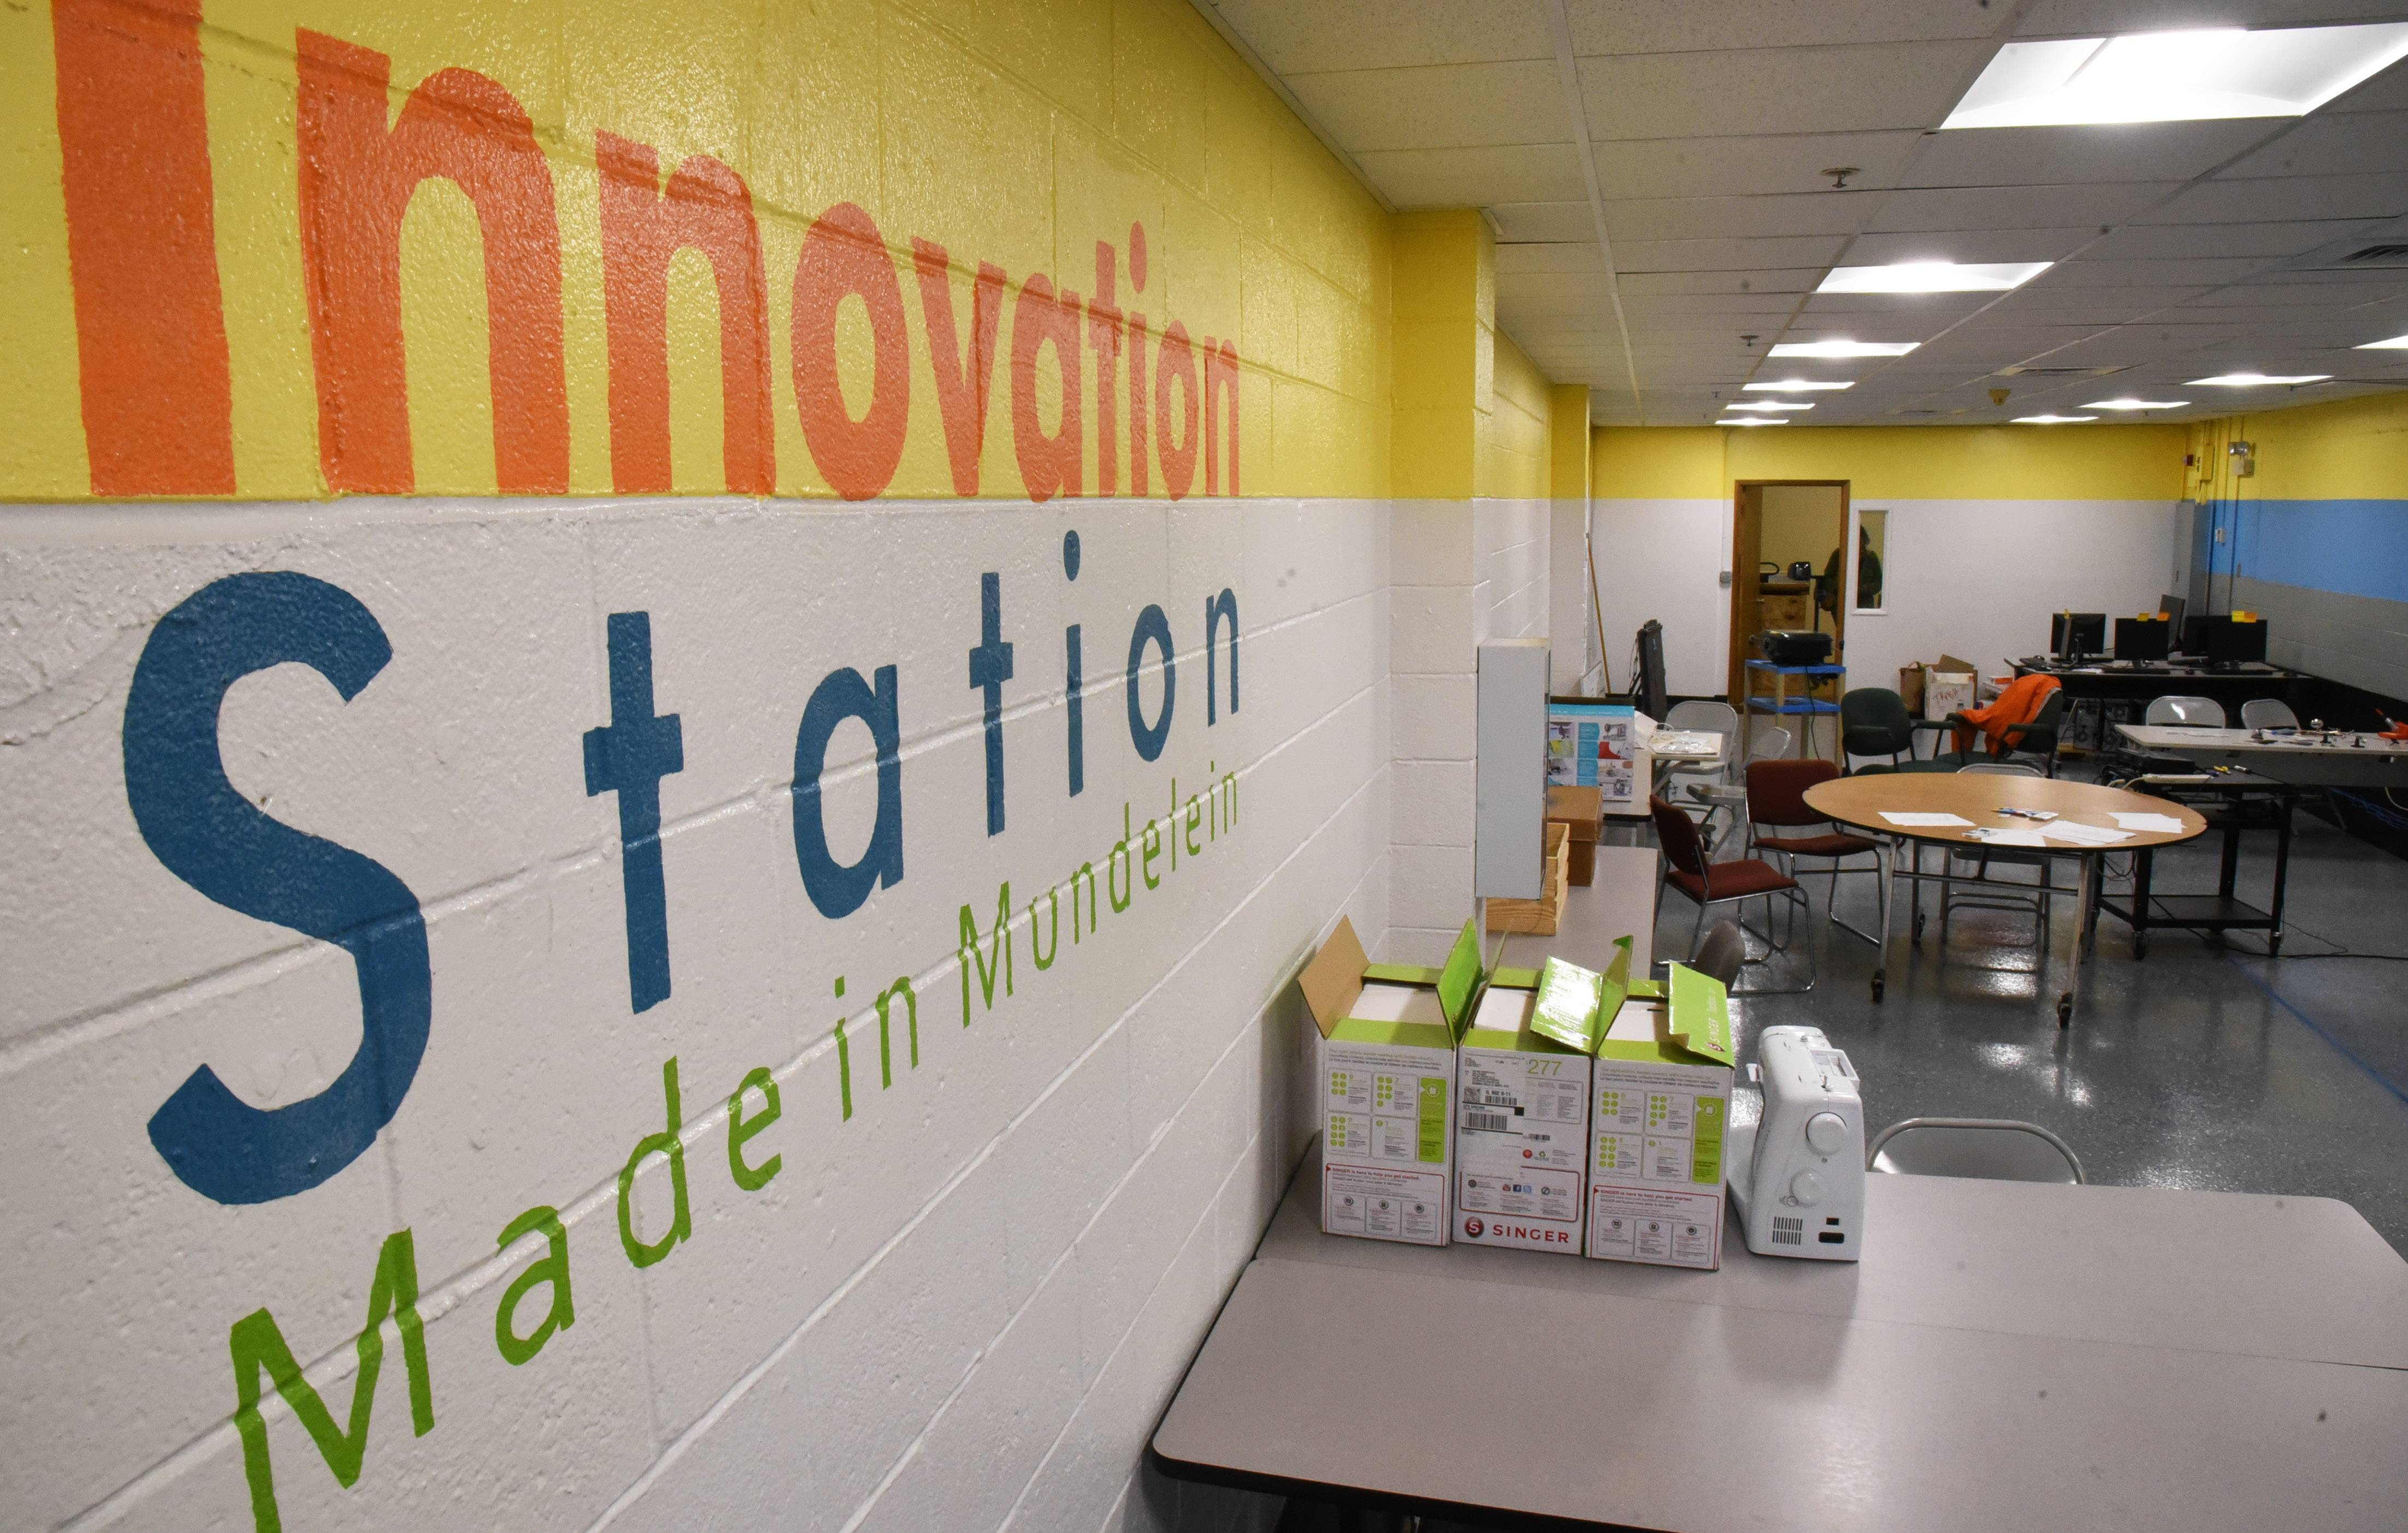 Mundelein Elementary District 75's STEAM foundation wants to raise $18,000 to finish outfitting the Innovation Station — a converted storage room at the district office in Mundelein.